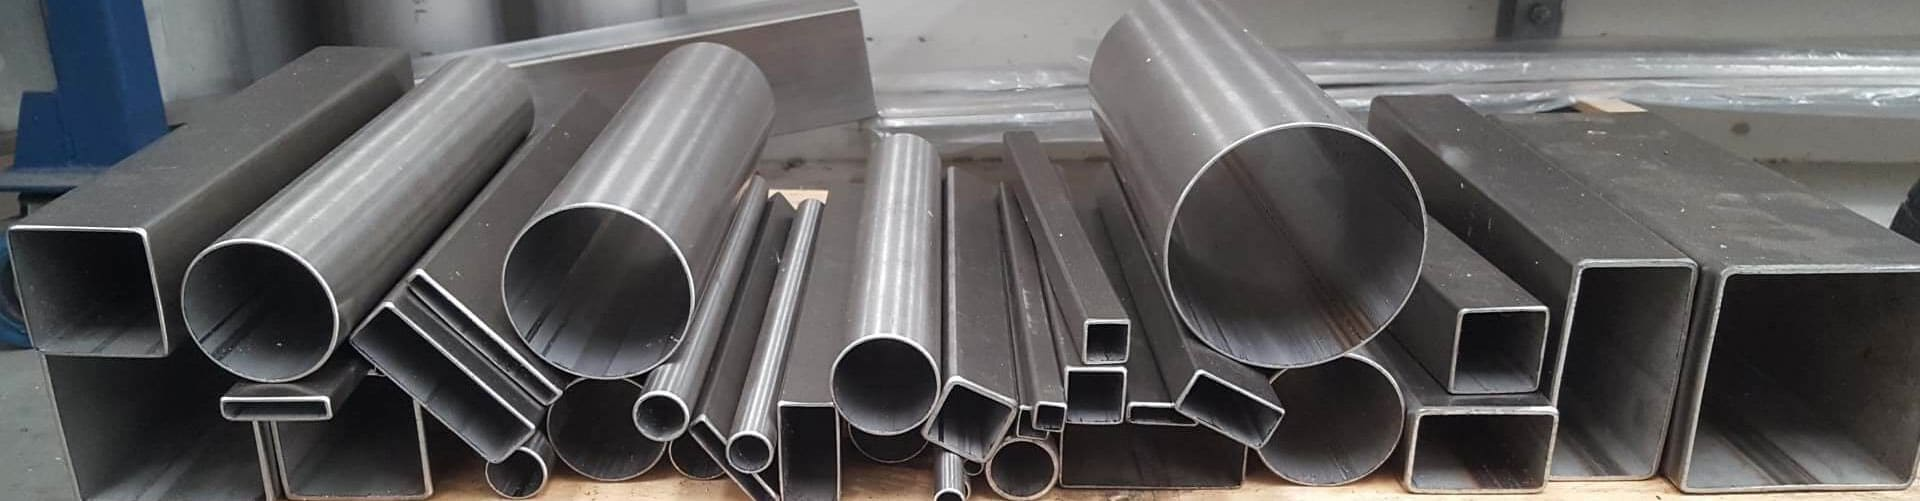 Inconel Alloy 718 Piping